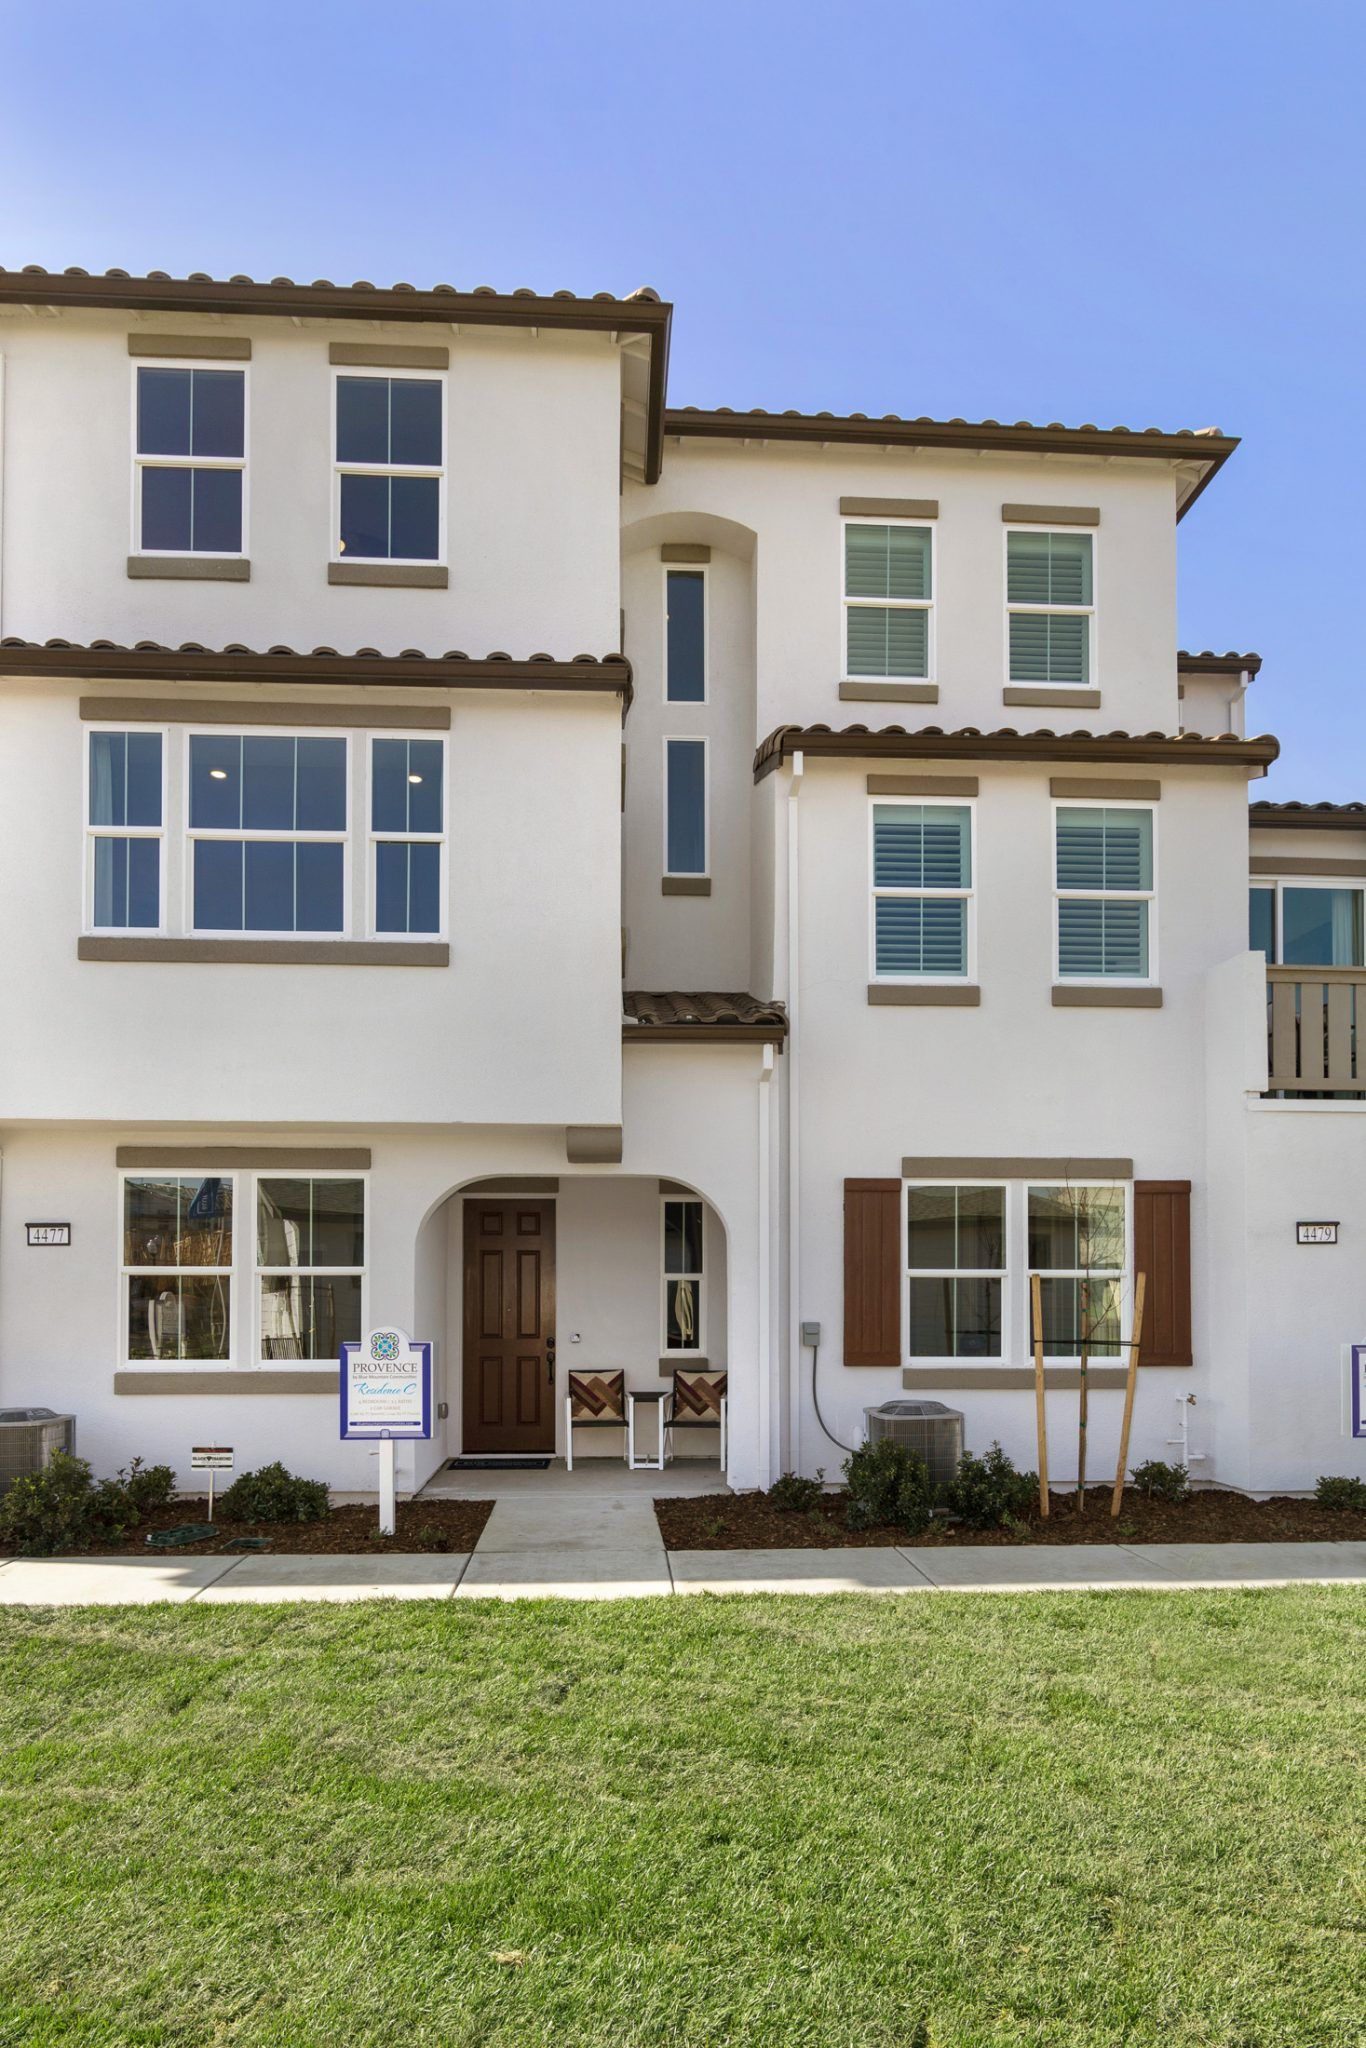 NEW HOMES FOR SALE SACRAMENTO:Professional photography of beautiful new homes by the Sacramento Airport